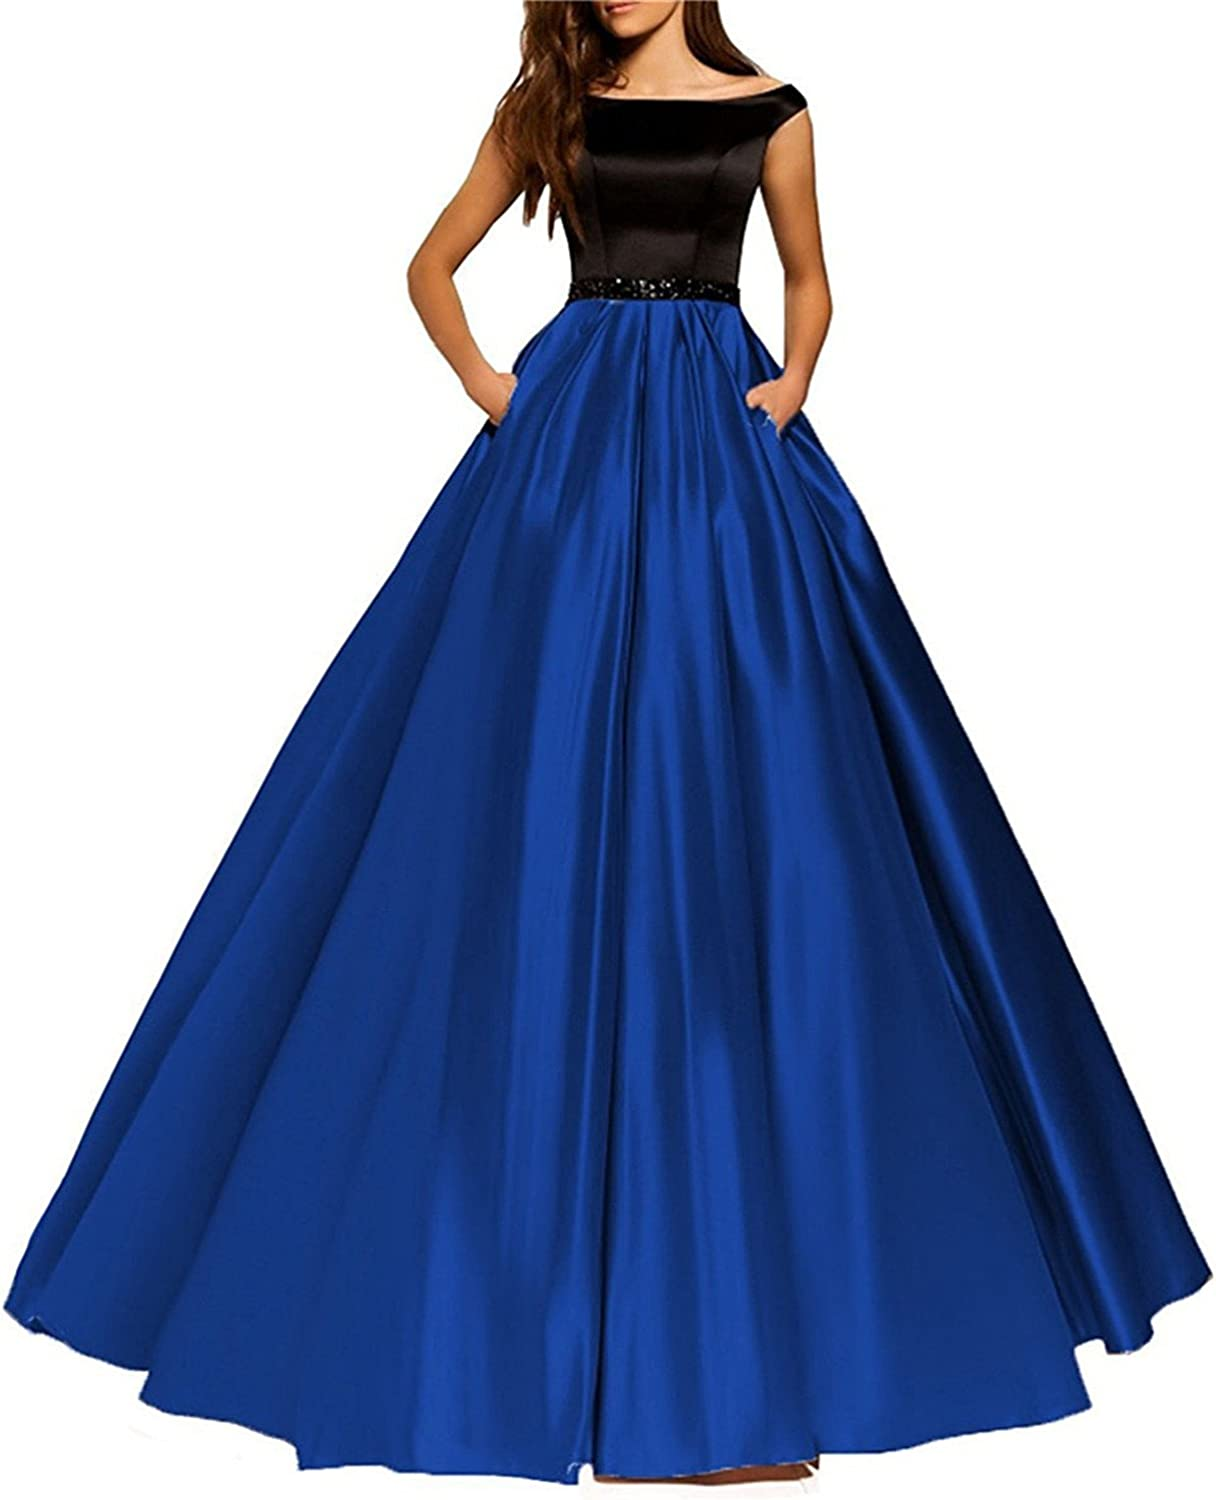 Homdor Prom Dresses With Pockets ALine Strapless Evening Gowns For Women Satin